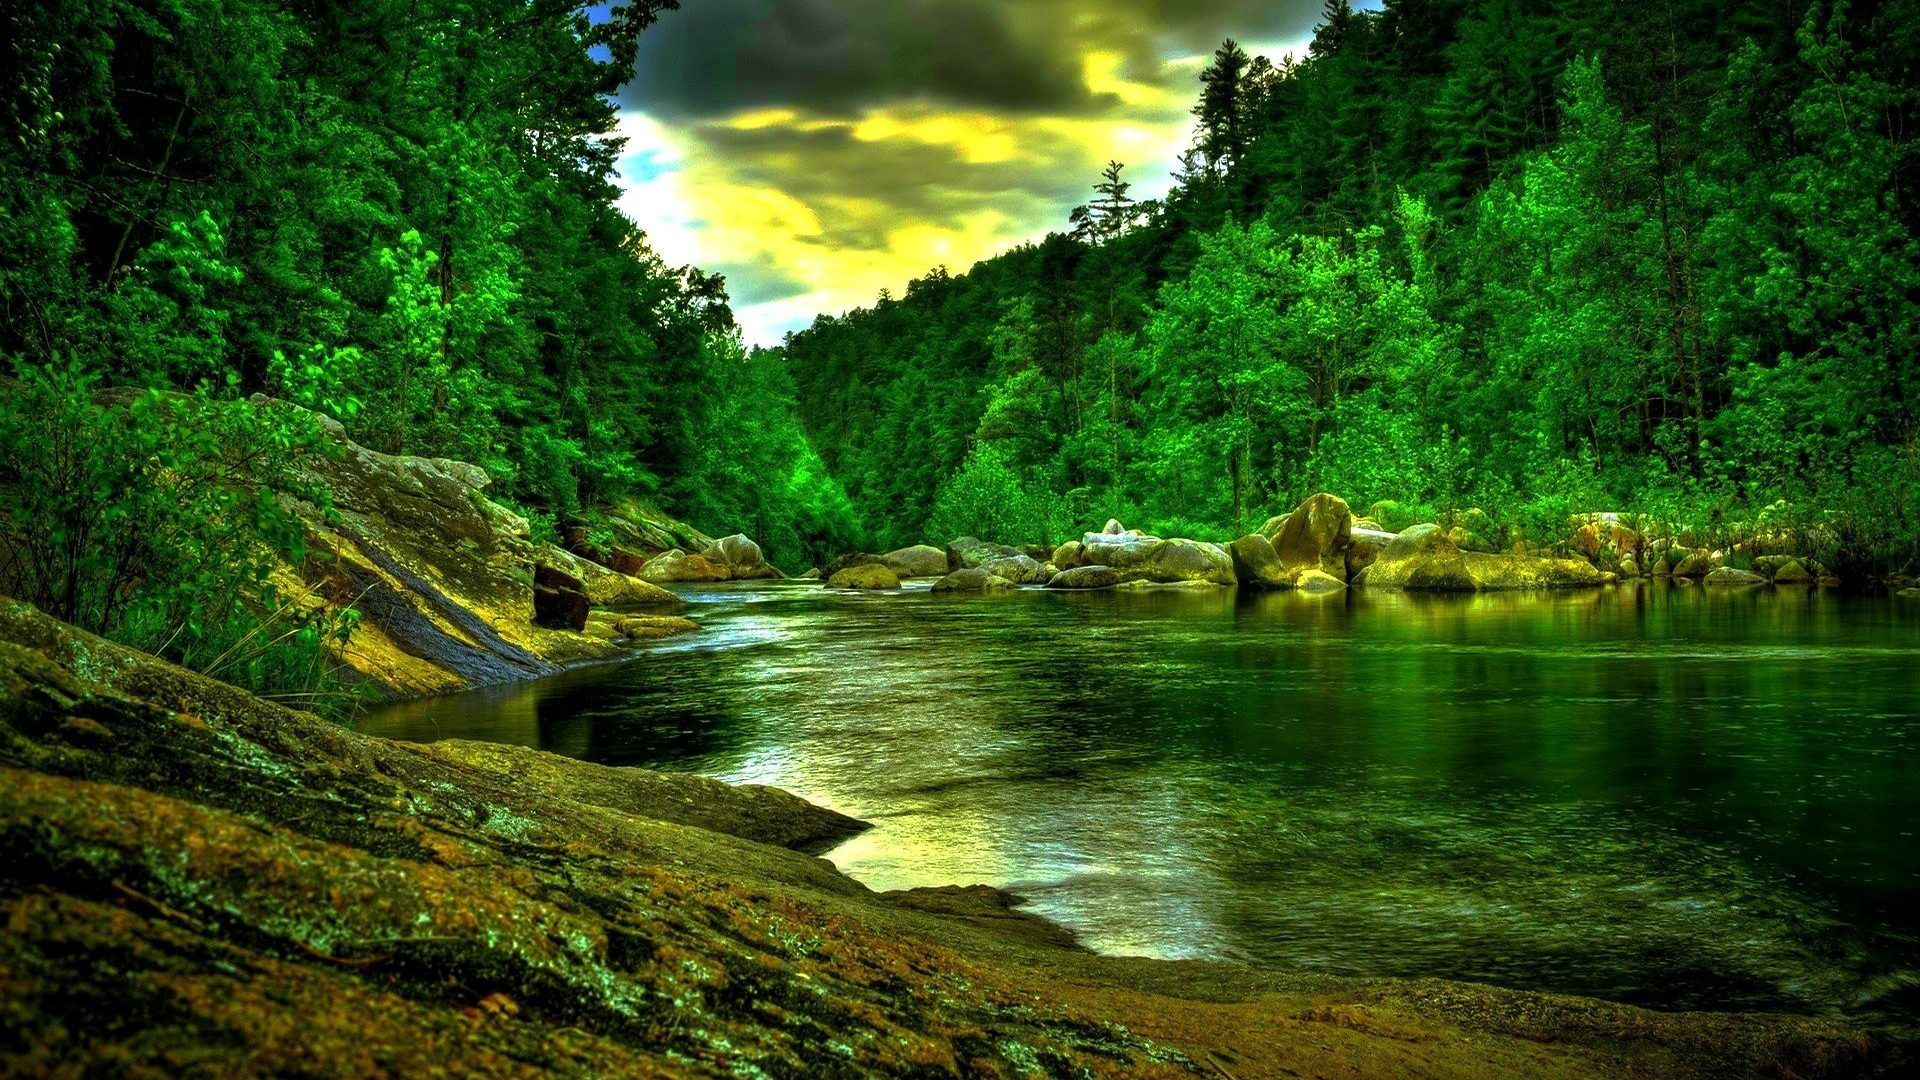 Nature Amazon Pictures Wallpapers Desktop Wallpaper Hd Full Screen